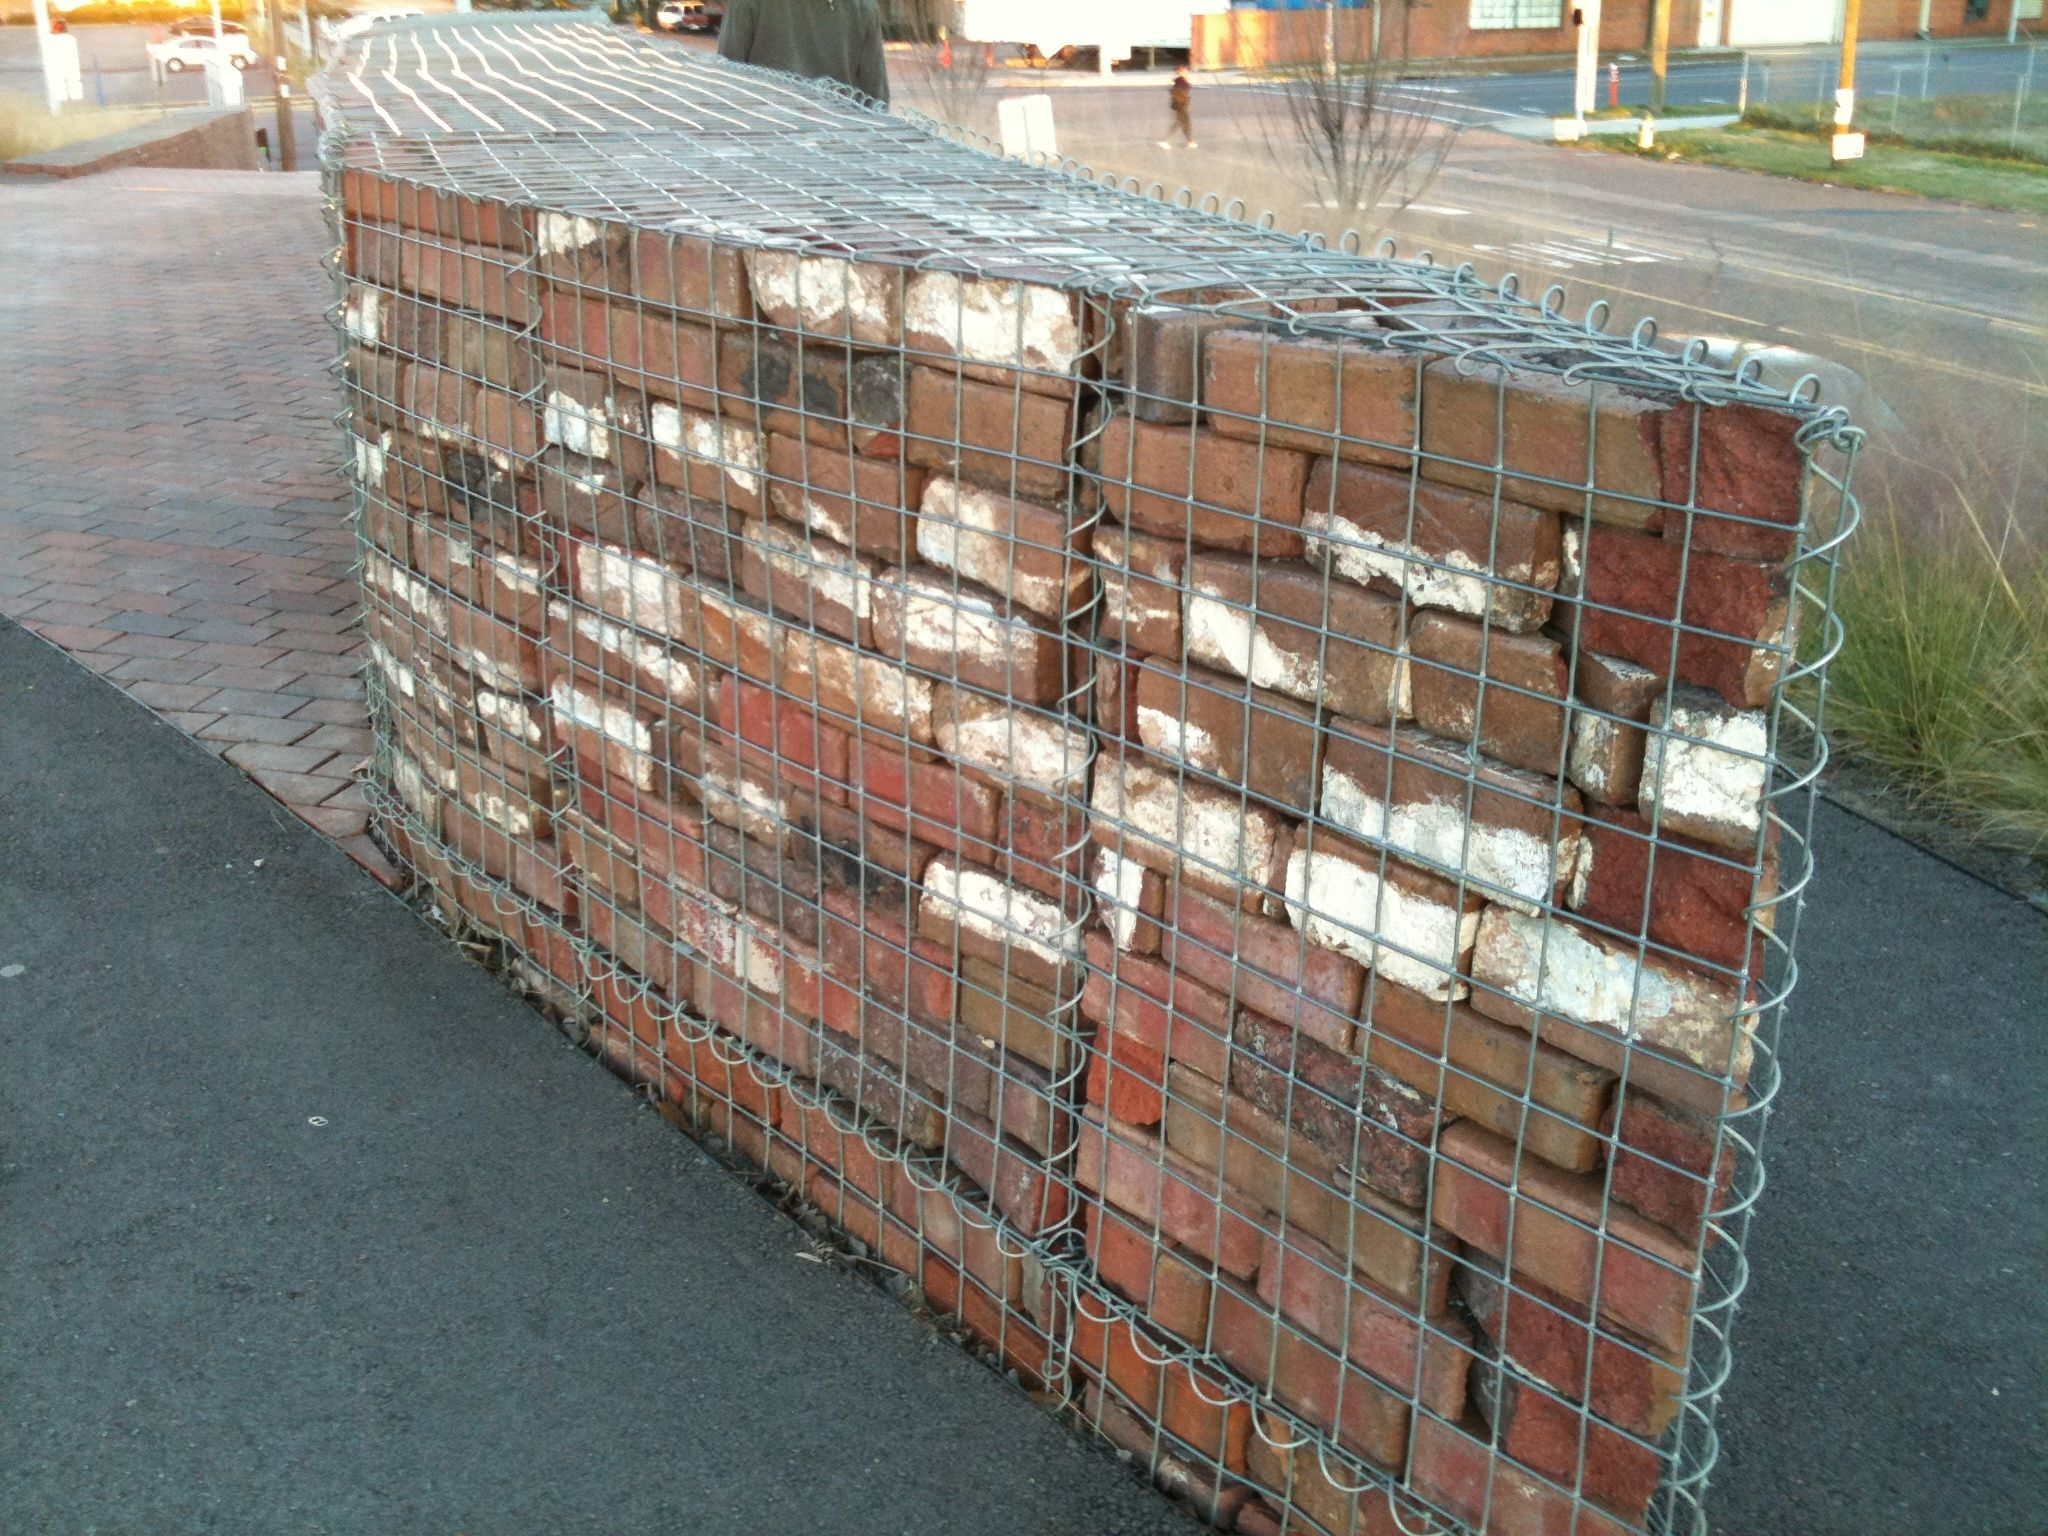 I M A Pretty Fan Of Gabion Baskets Those Wire Cages That Can Be Used To Hold Together Anything From Recycled Bricks Like This Example